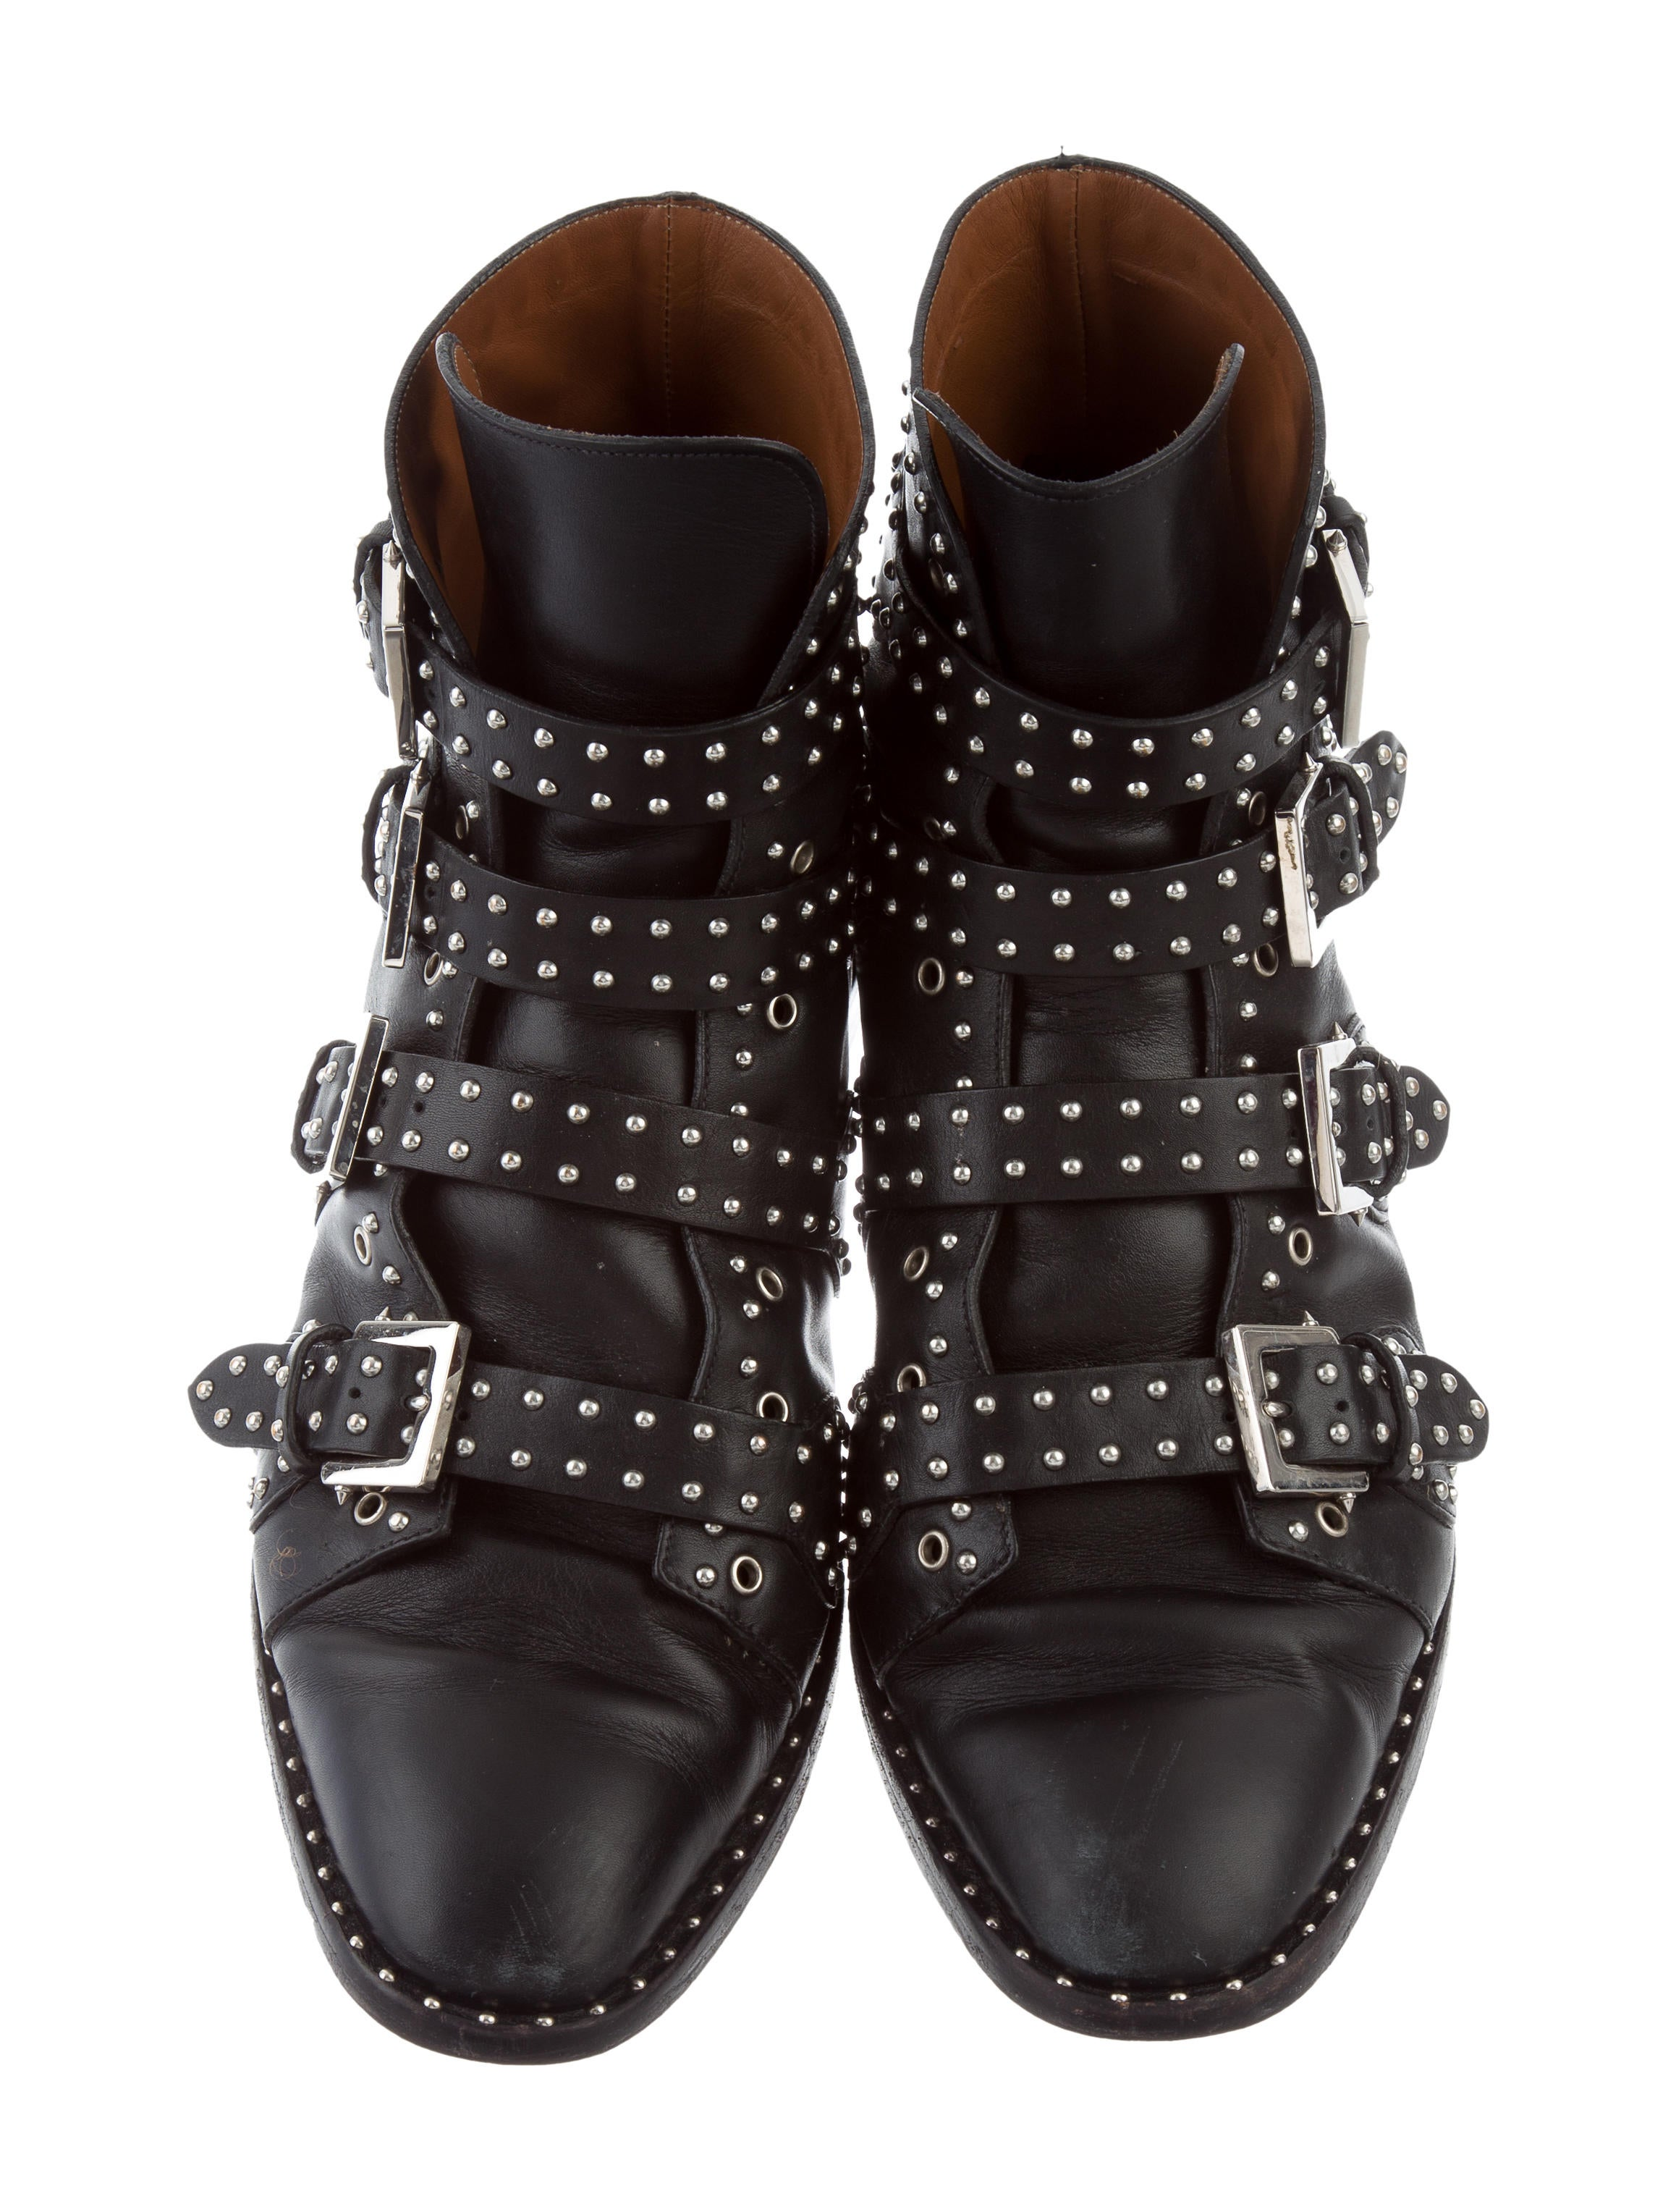 Givenchy Studded Leather Boots Shoes Giv42951 The